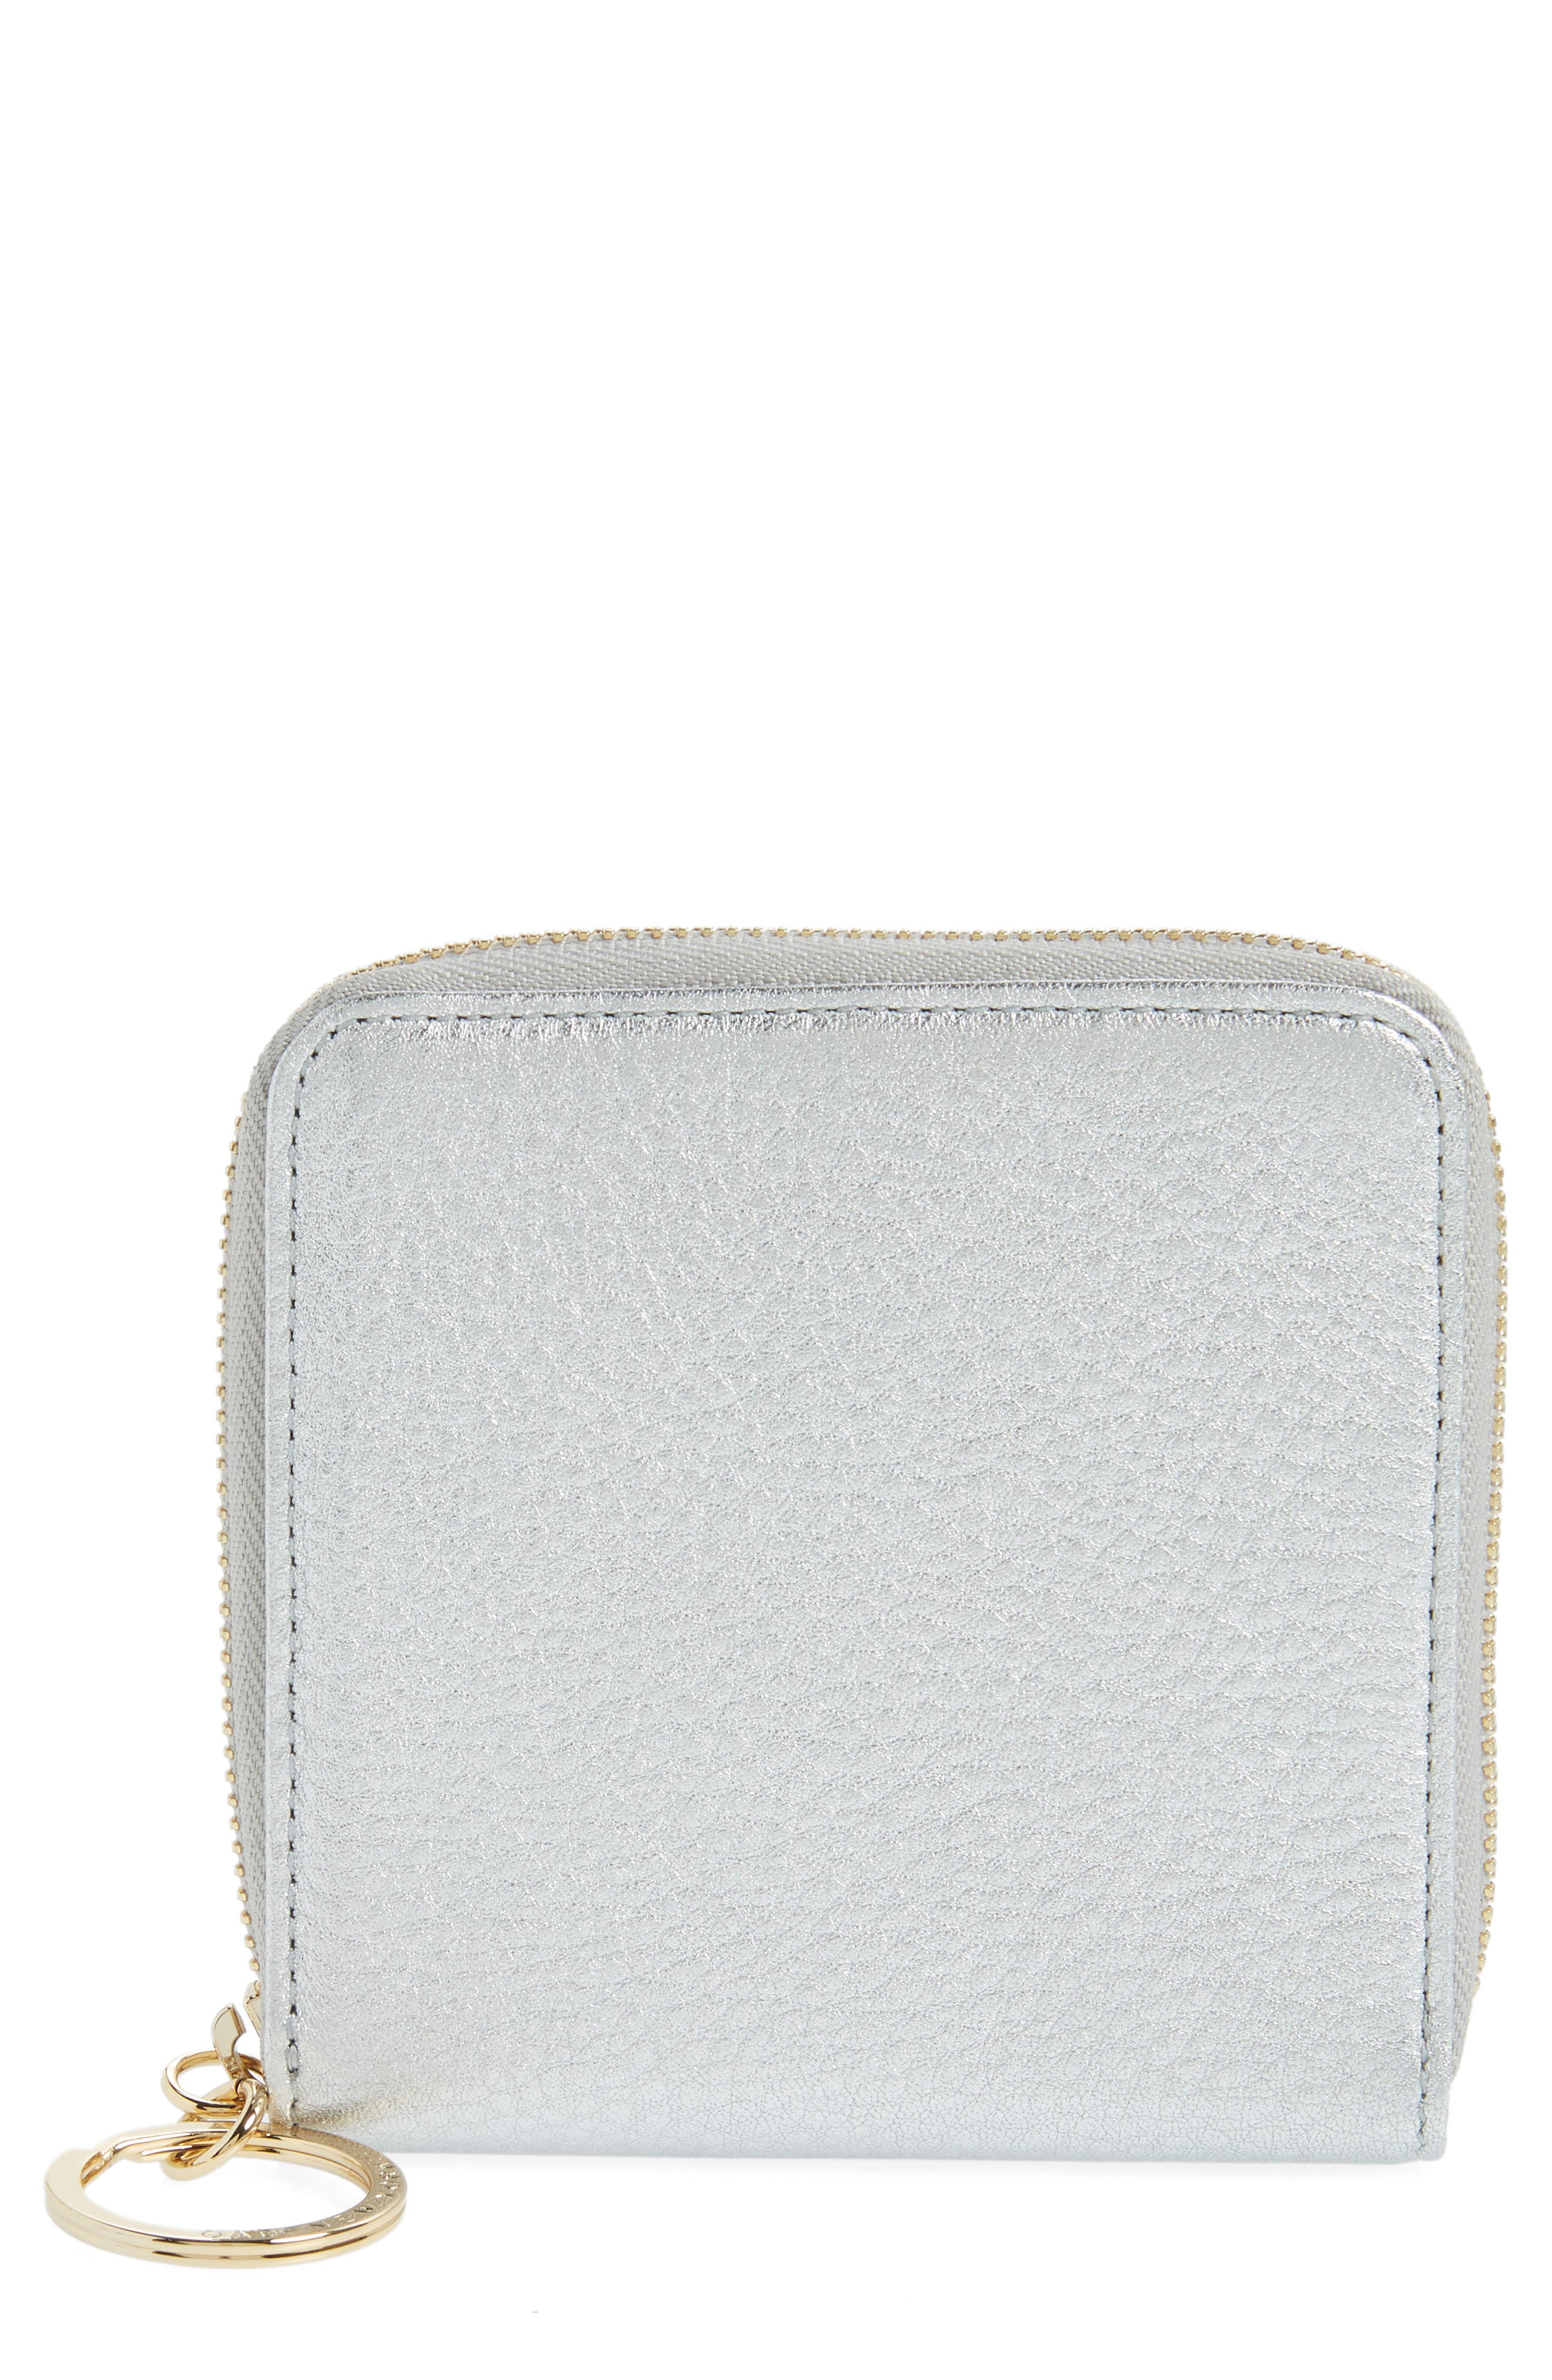 Small Zip Around Leather Wallet,                         Main,                         color, SILVER